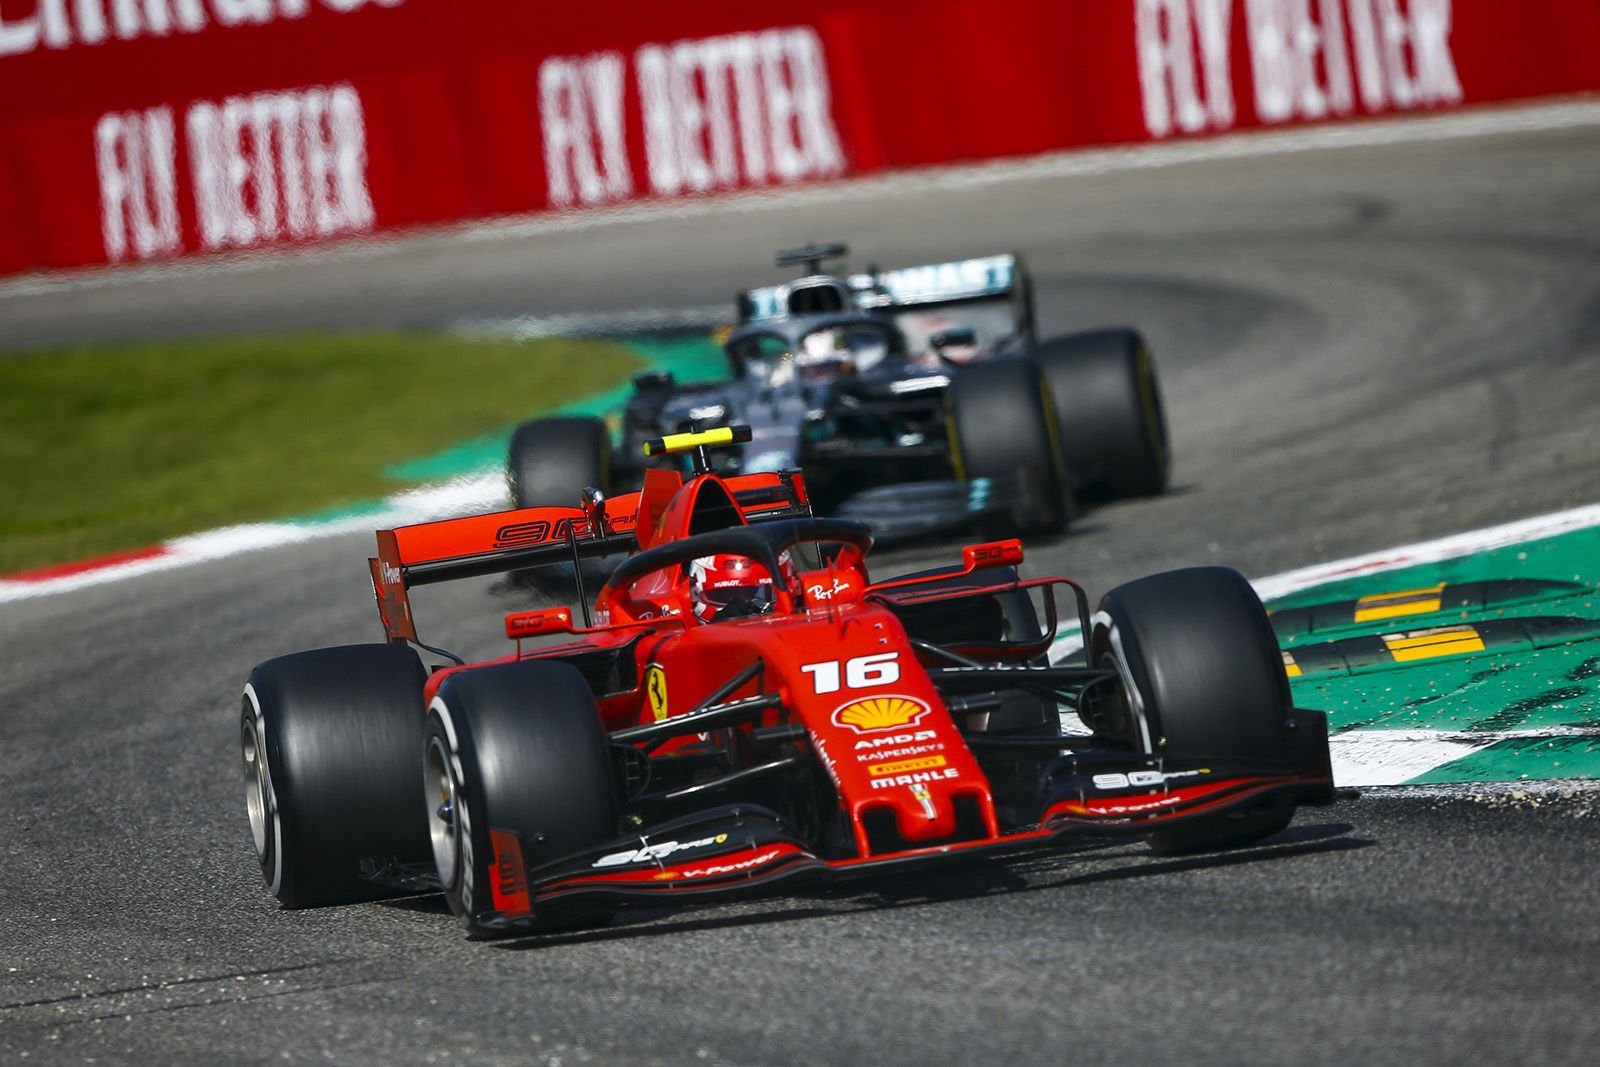 F1 Italian Grand Prix Results Charles Leclerc Ends Ferrari Drought At Monza